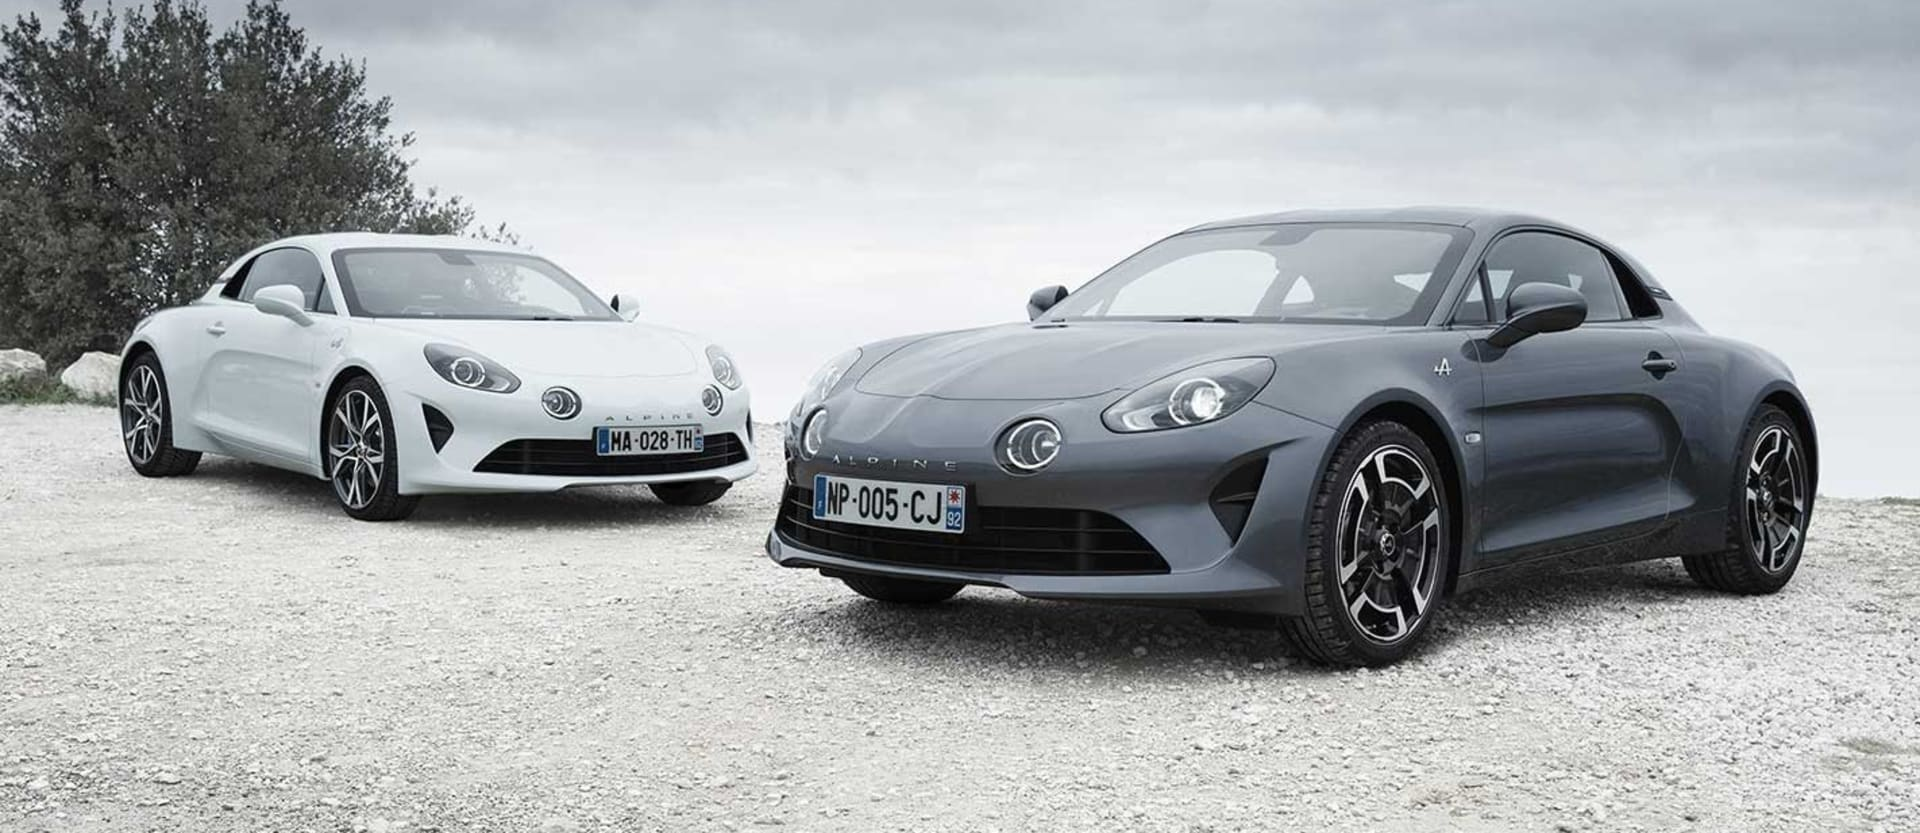 Alpine A110 gains two new versions